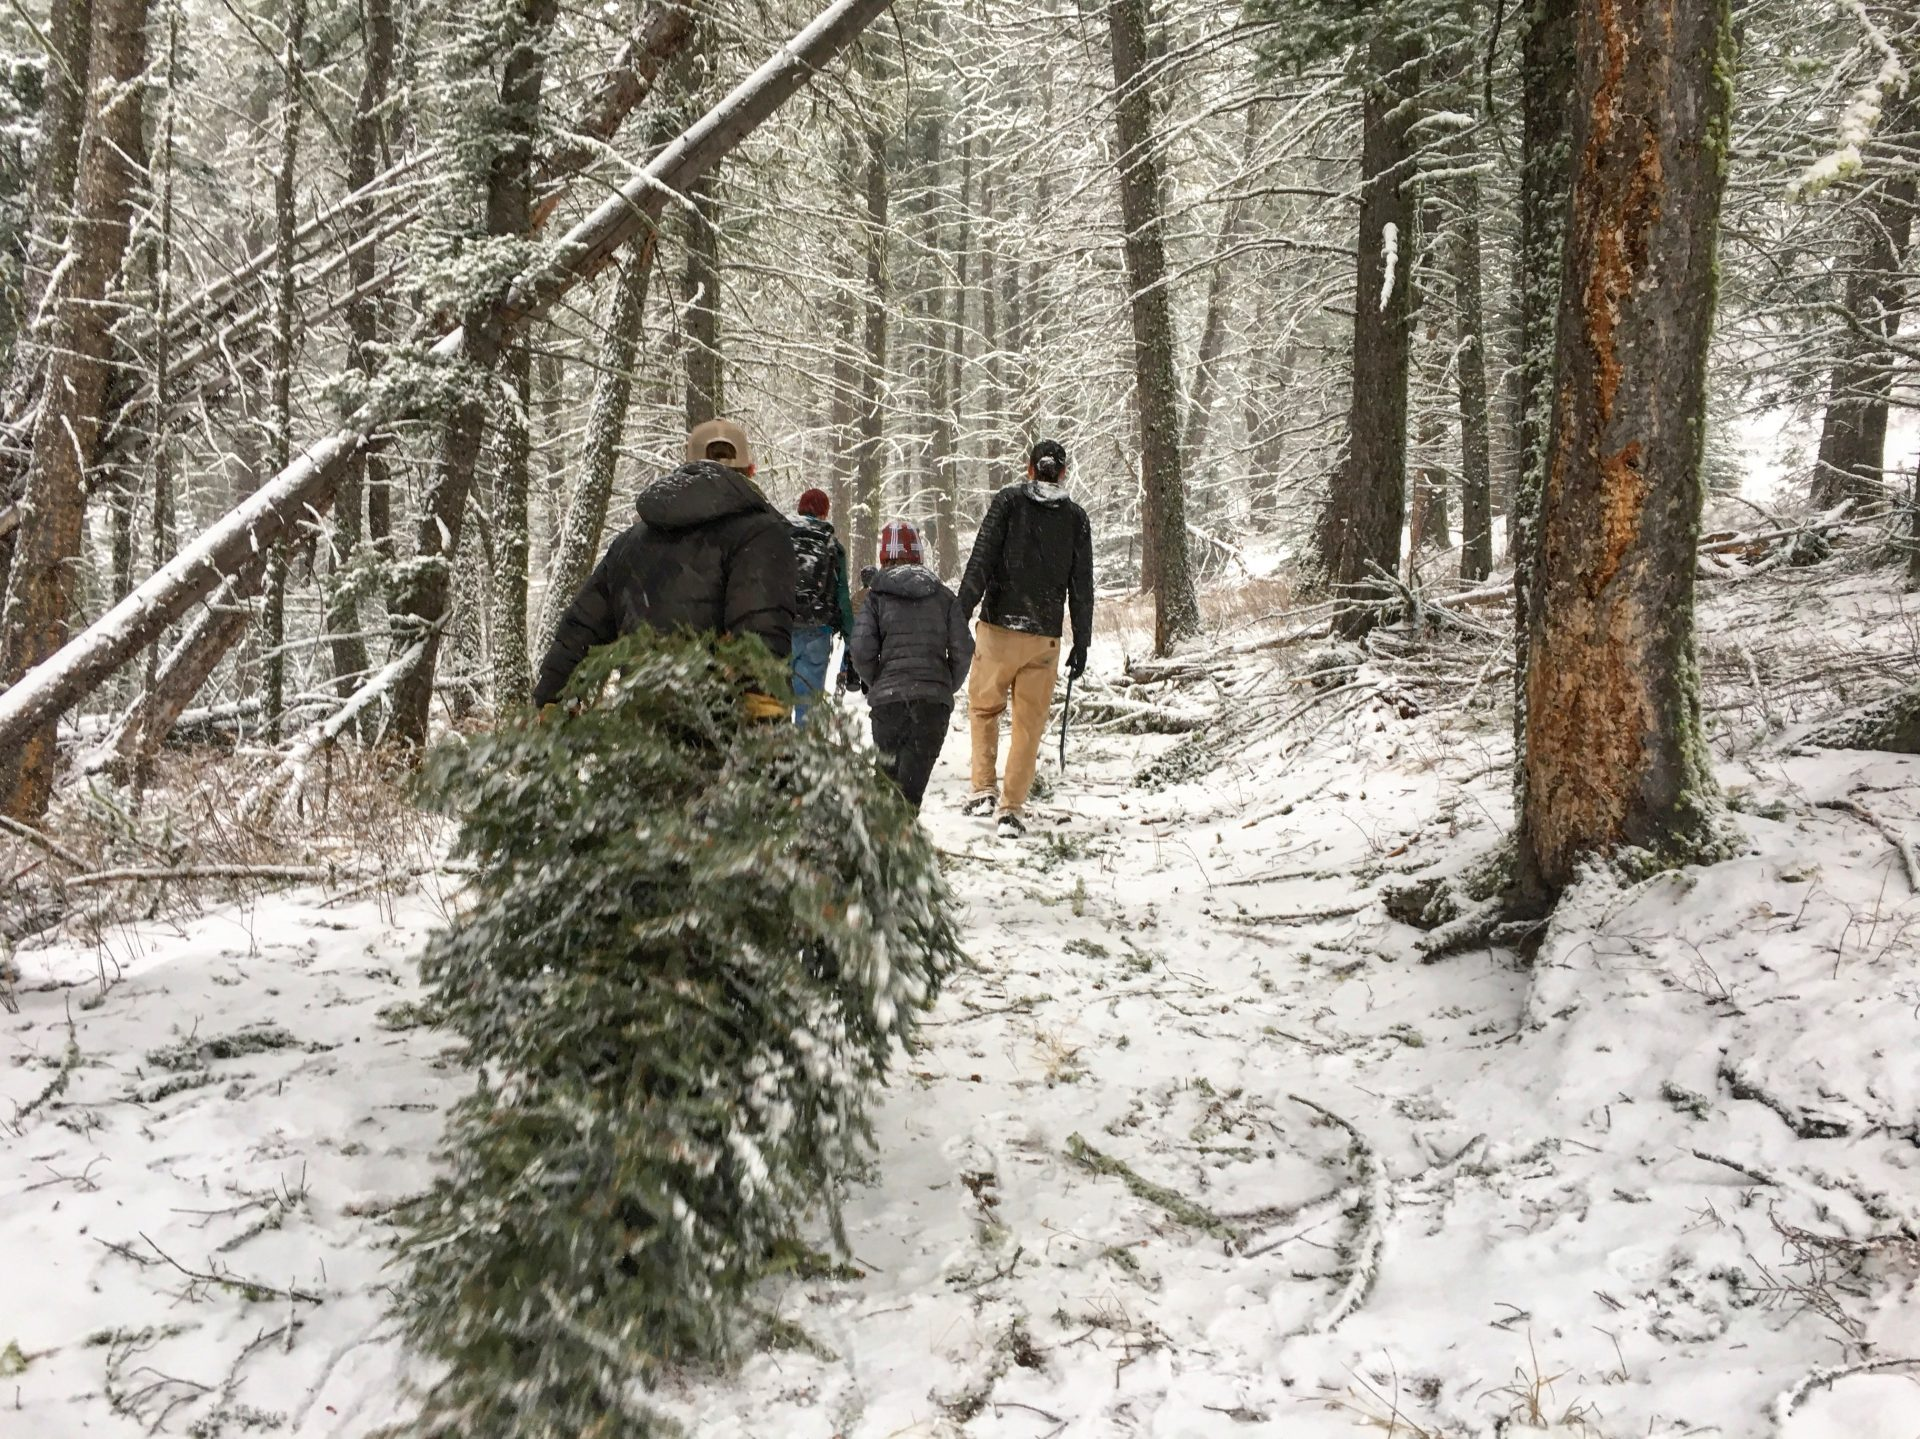 Christmas Tree hunt in the forest